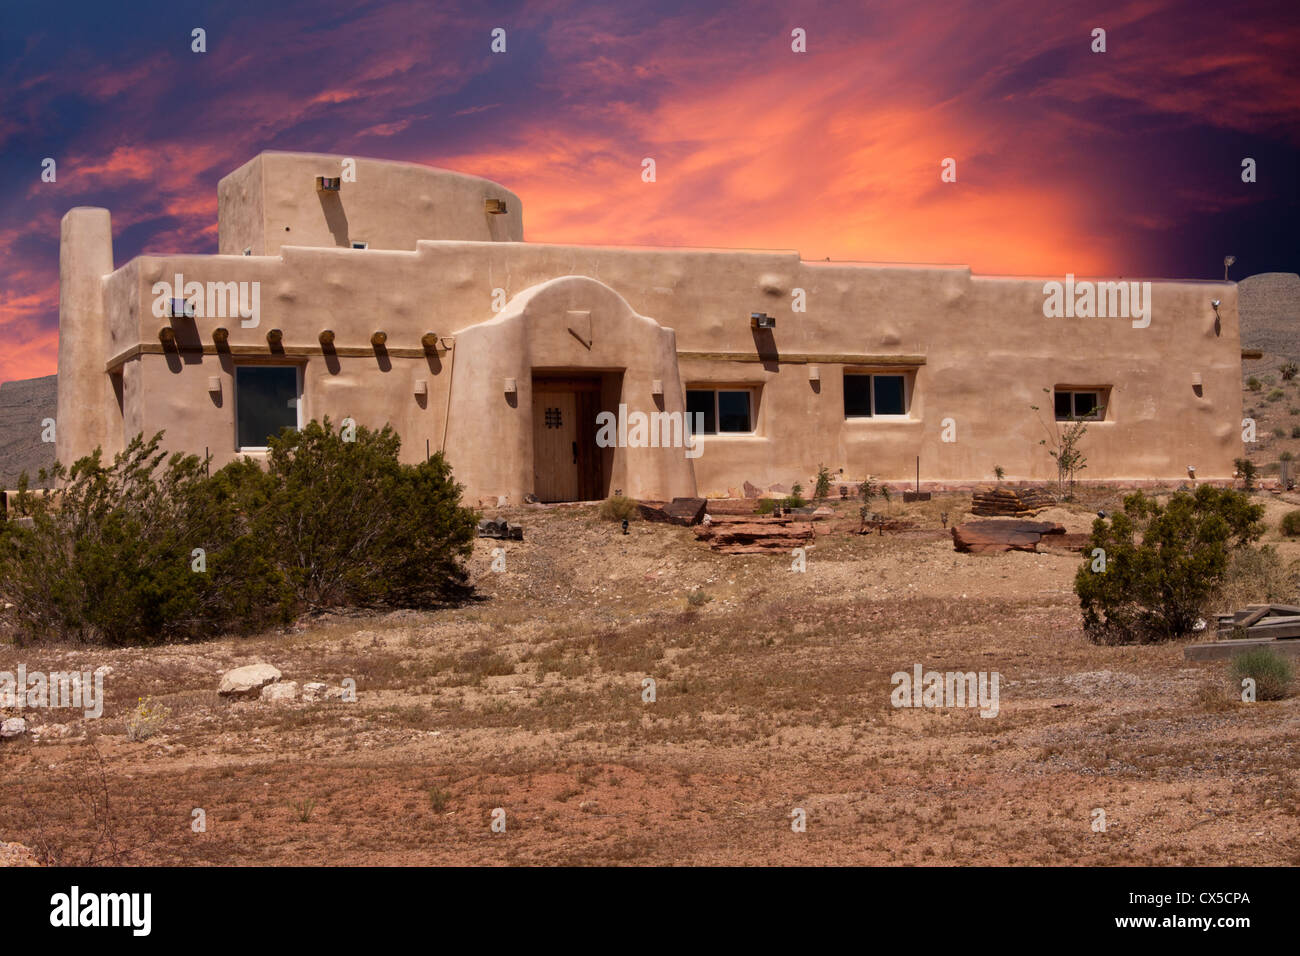 Adobe House In Nevada Desert With Dramatic Sunset Stock